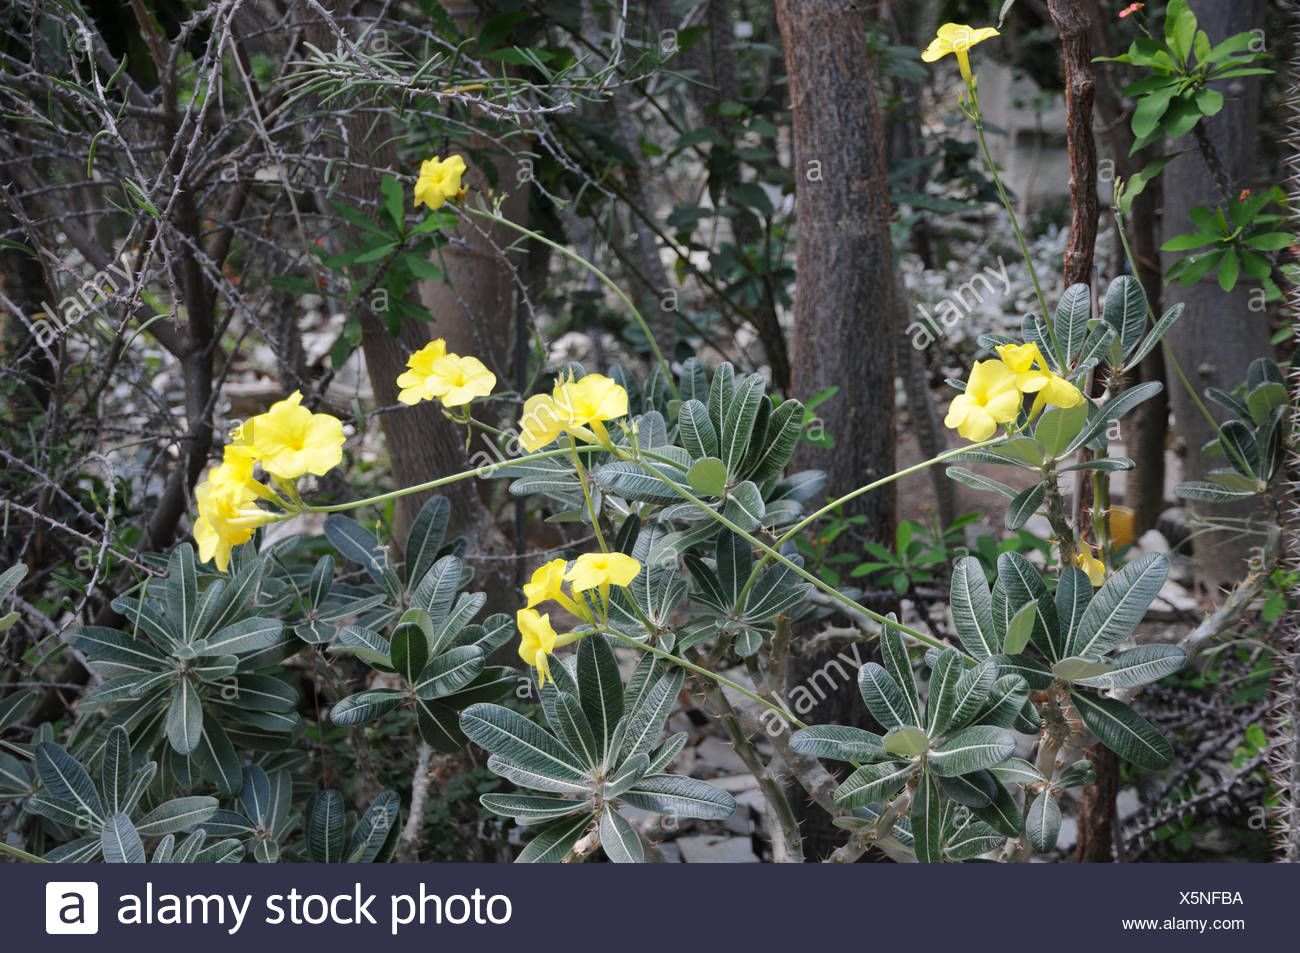 Elephants foot plant - Stock Image